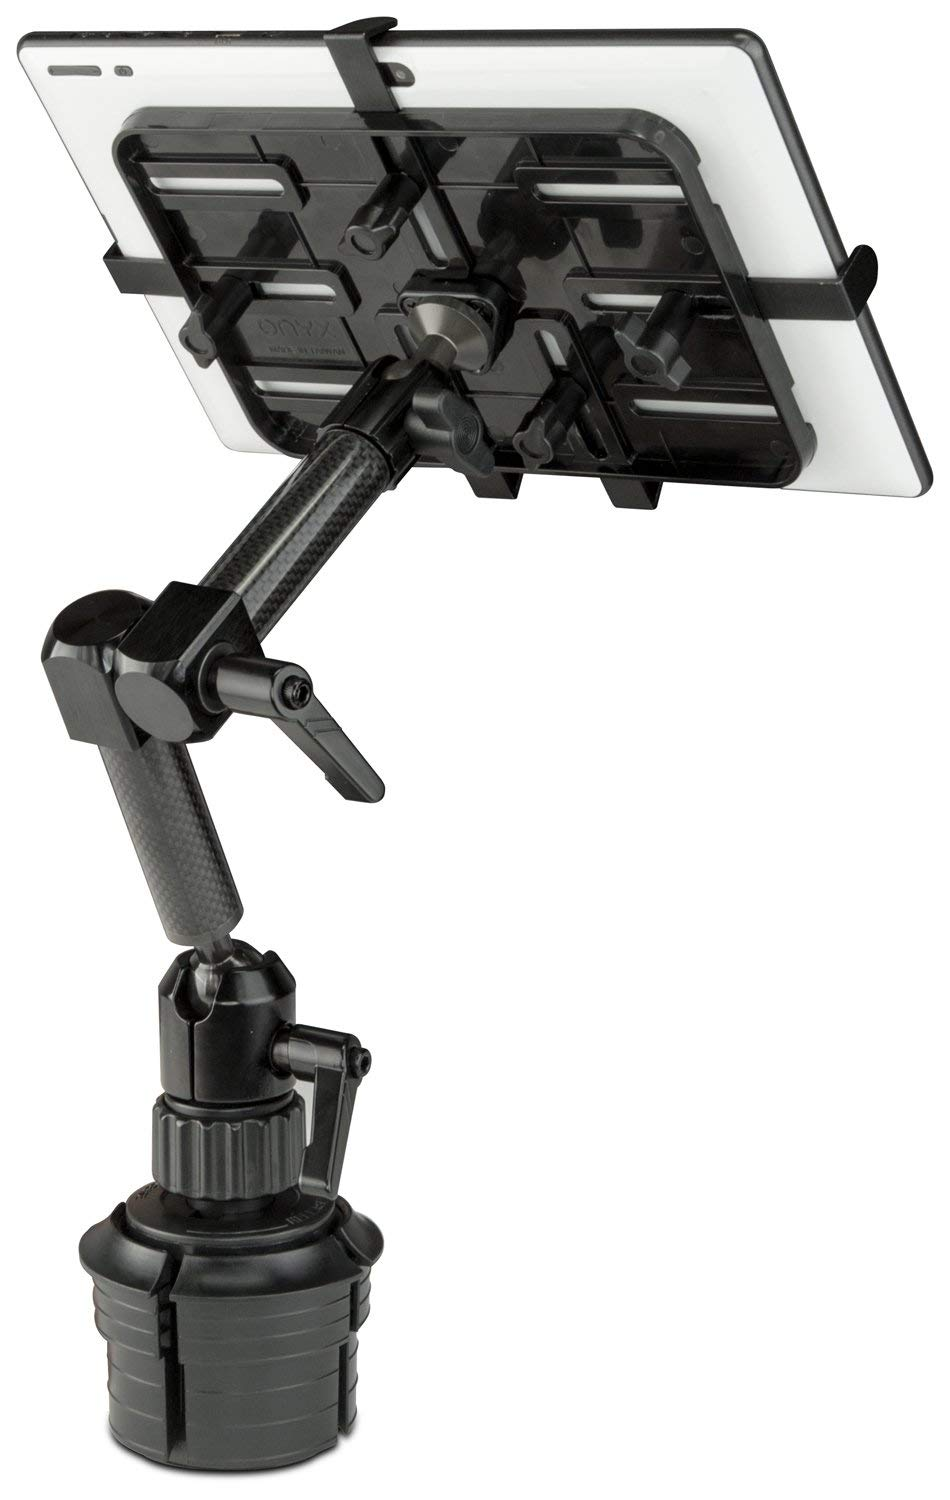 """Mount-It! Car Cup Holder Tablet Mount, Universal Full Motion Car Mount for iPad Pro/Mini/Air, Amazon Fire, Samsung Galaxy, Including 7"""" to 11"""" Android Tablets up to 3.3lbs, Carbon Fiber"""